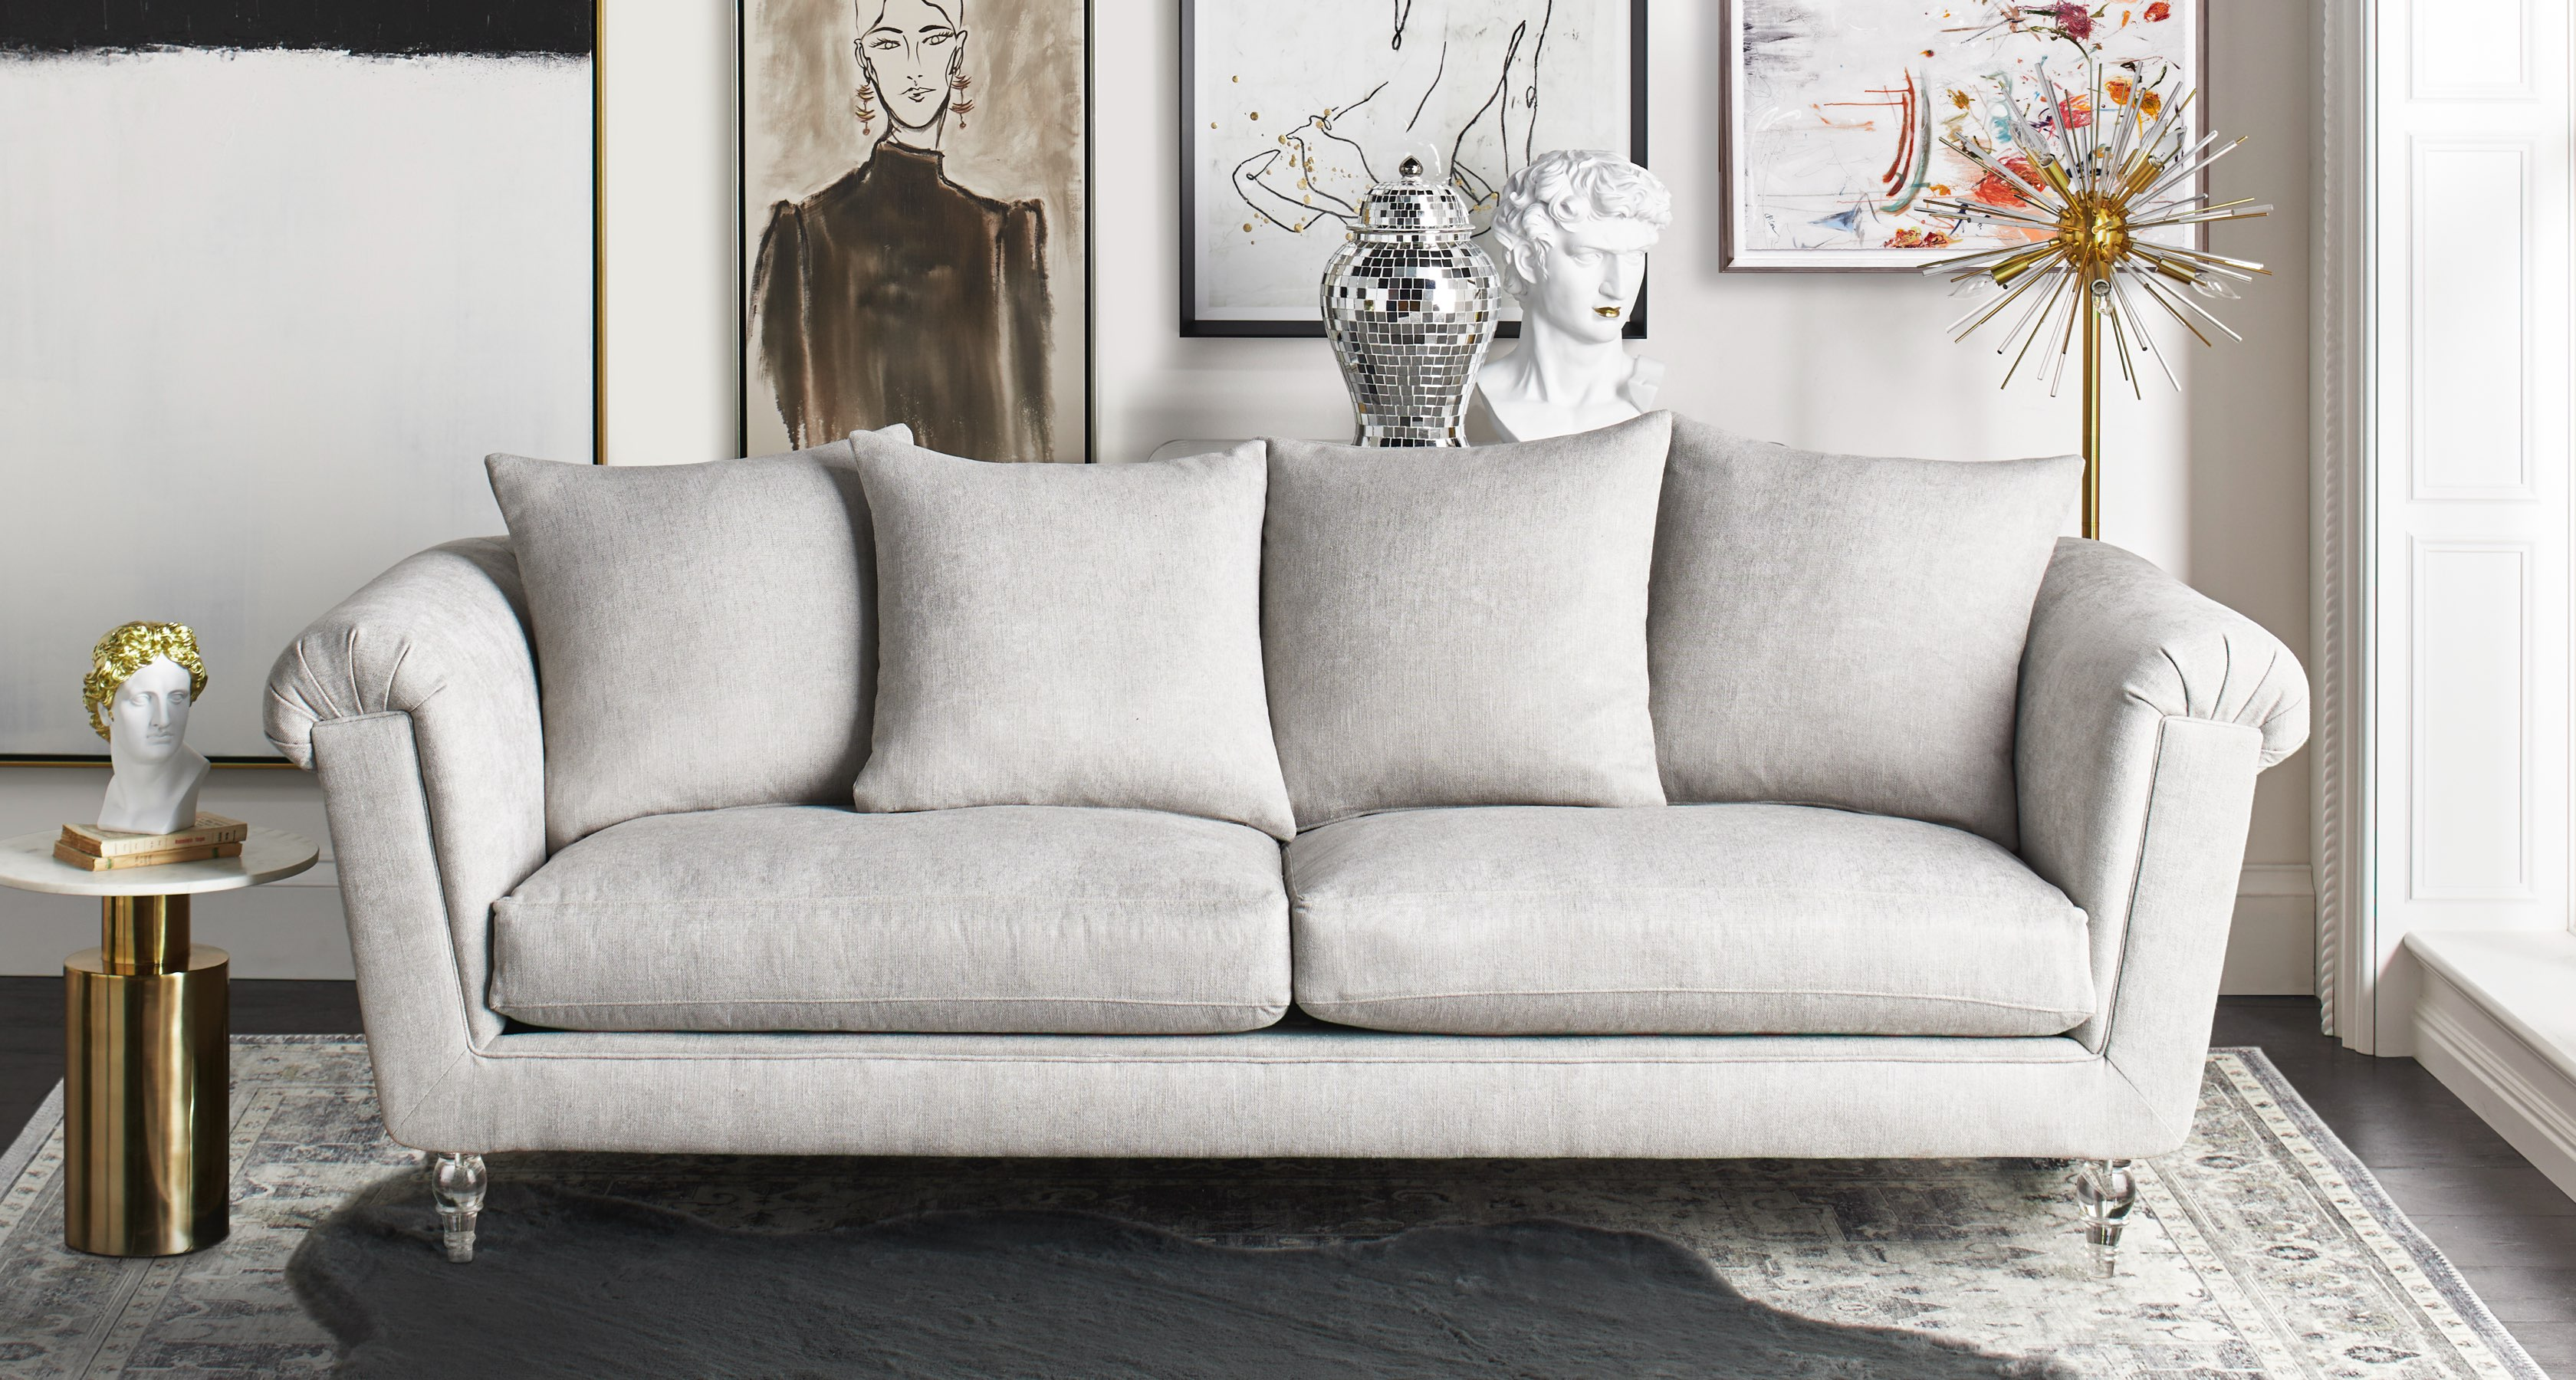 up to 20% off custom furniture